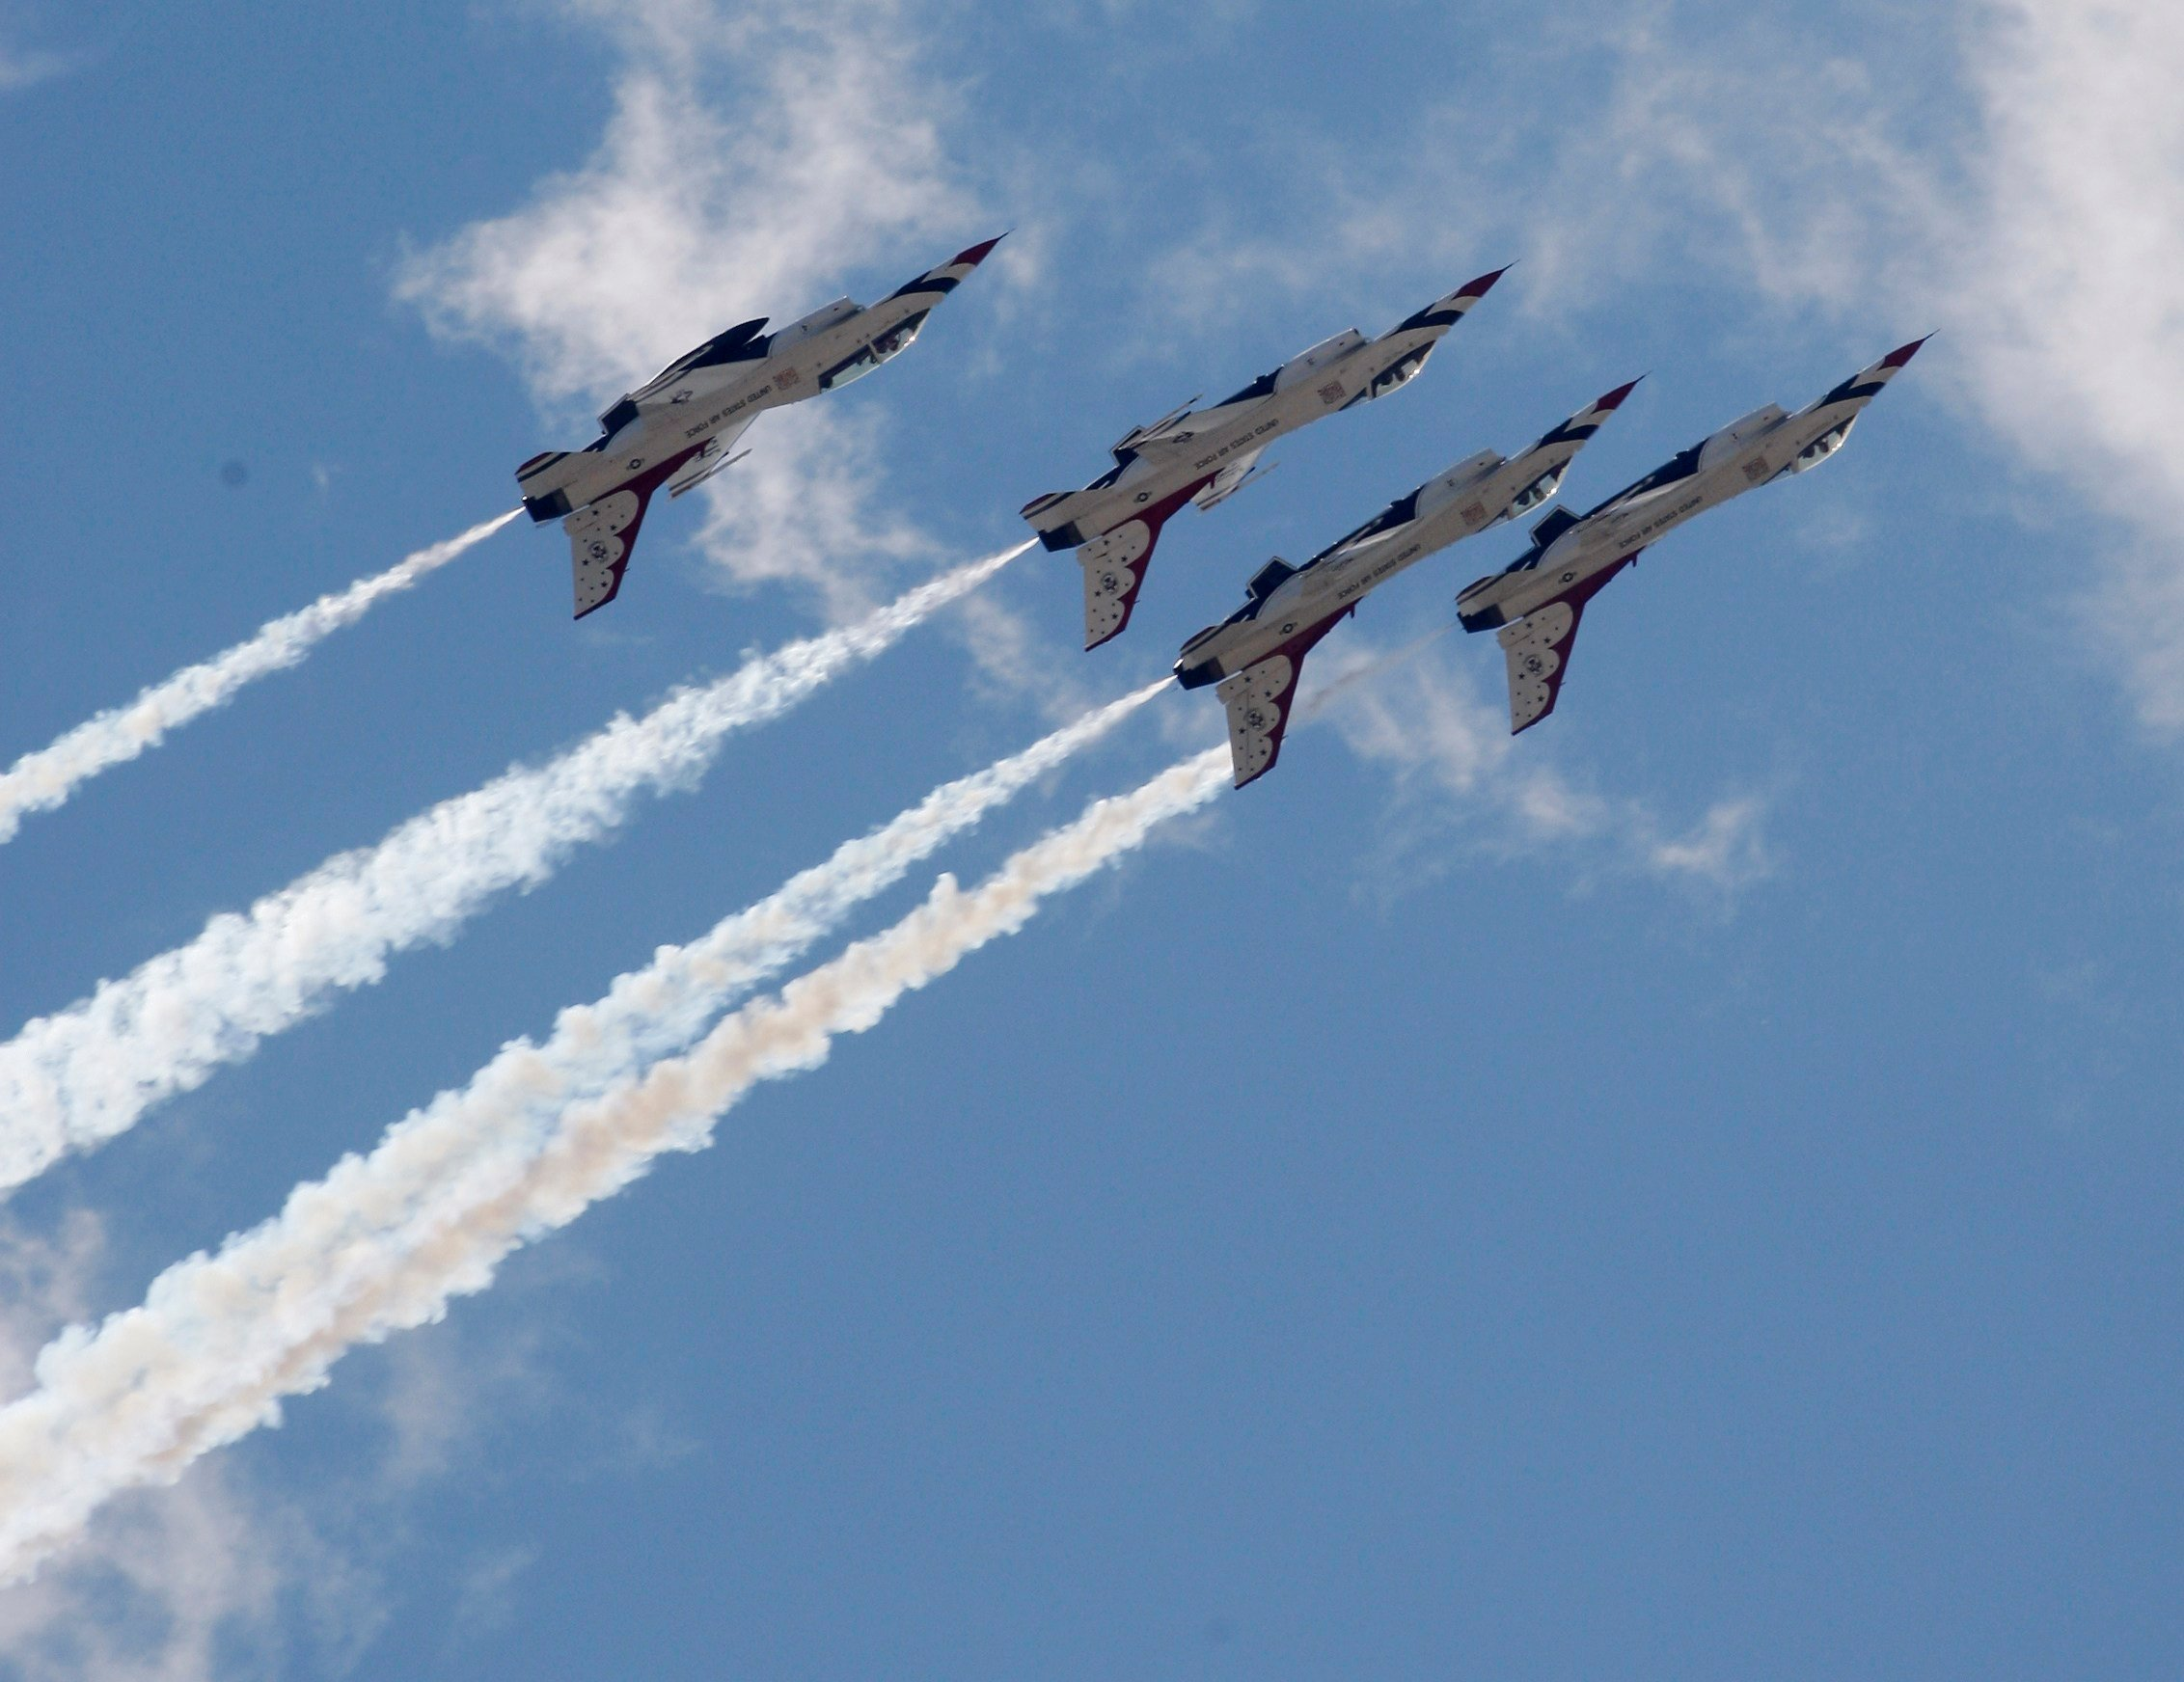 In this file photo the U.S. Air Force Thunderbirds practice during a rehearsal for an air show, in Oklahoma City. The Air Force says a member of its Thunderbirds flight team was killed in the crash of his F-16 in Nevada. (AP Photo/Sue Ogrocki,File)